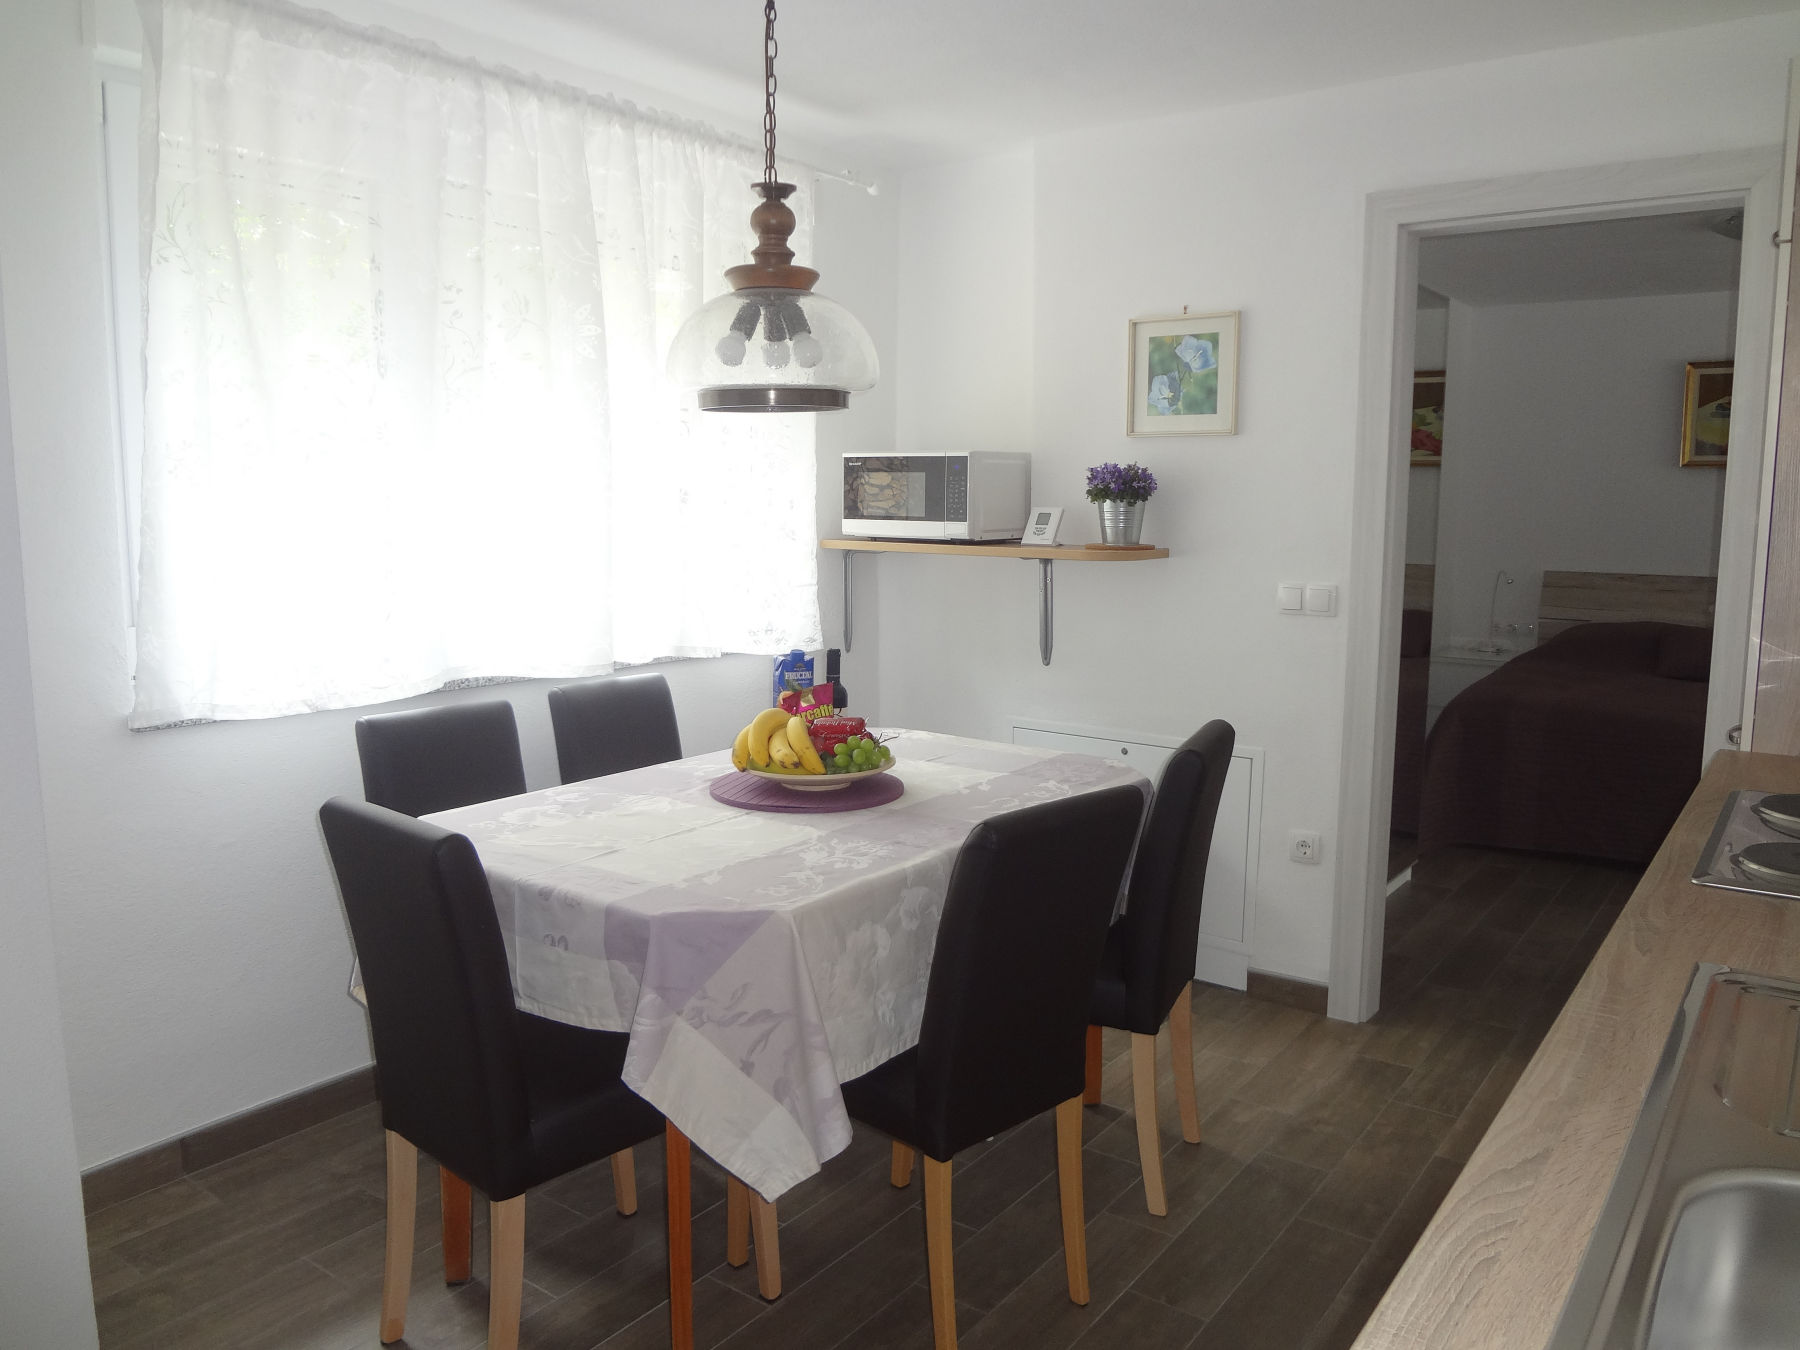 A dinning table in the ground floor apartment, the Bled area of Slovenia